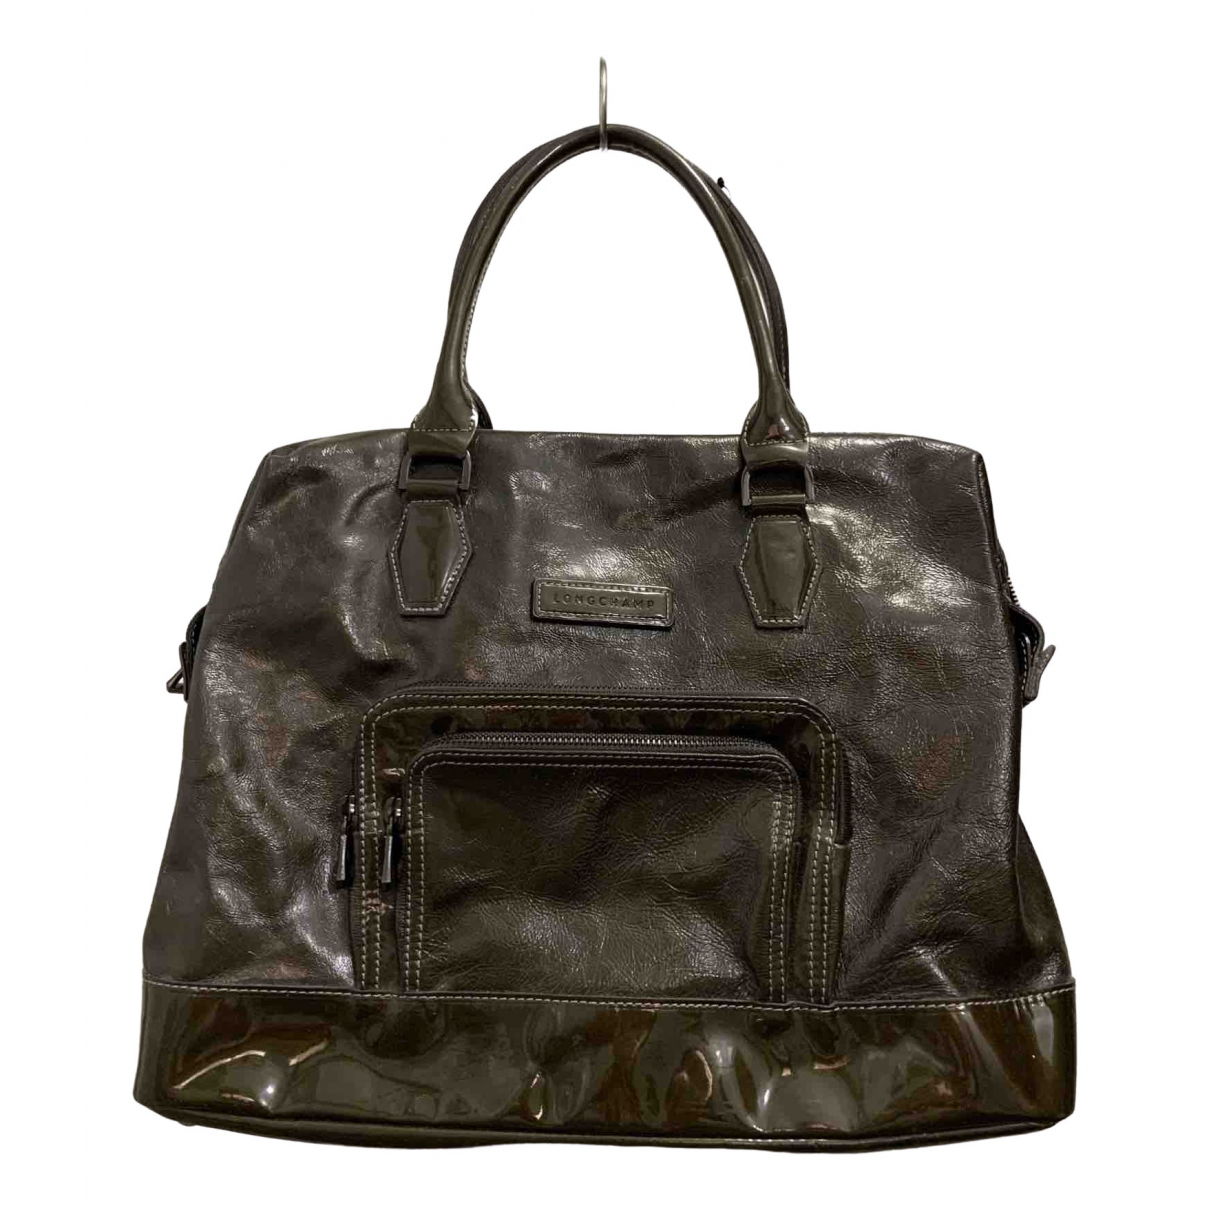 Longchamp \N Green Patent leather handbag for Women \N